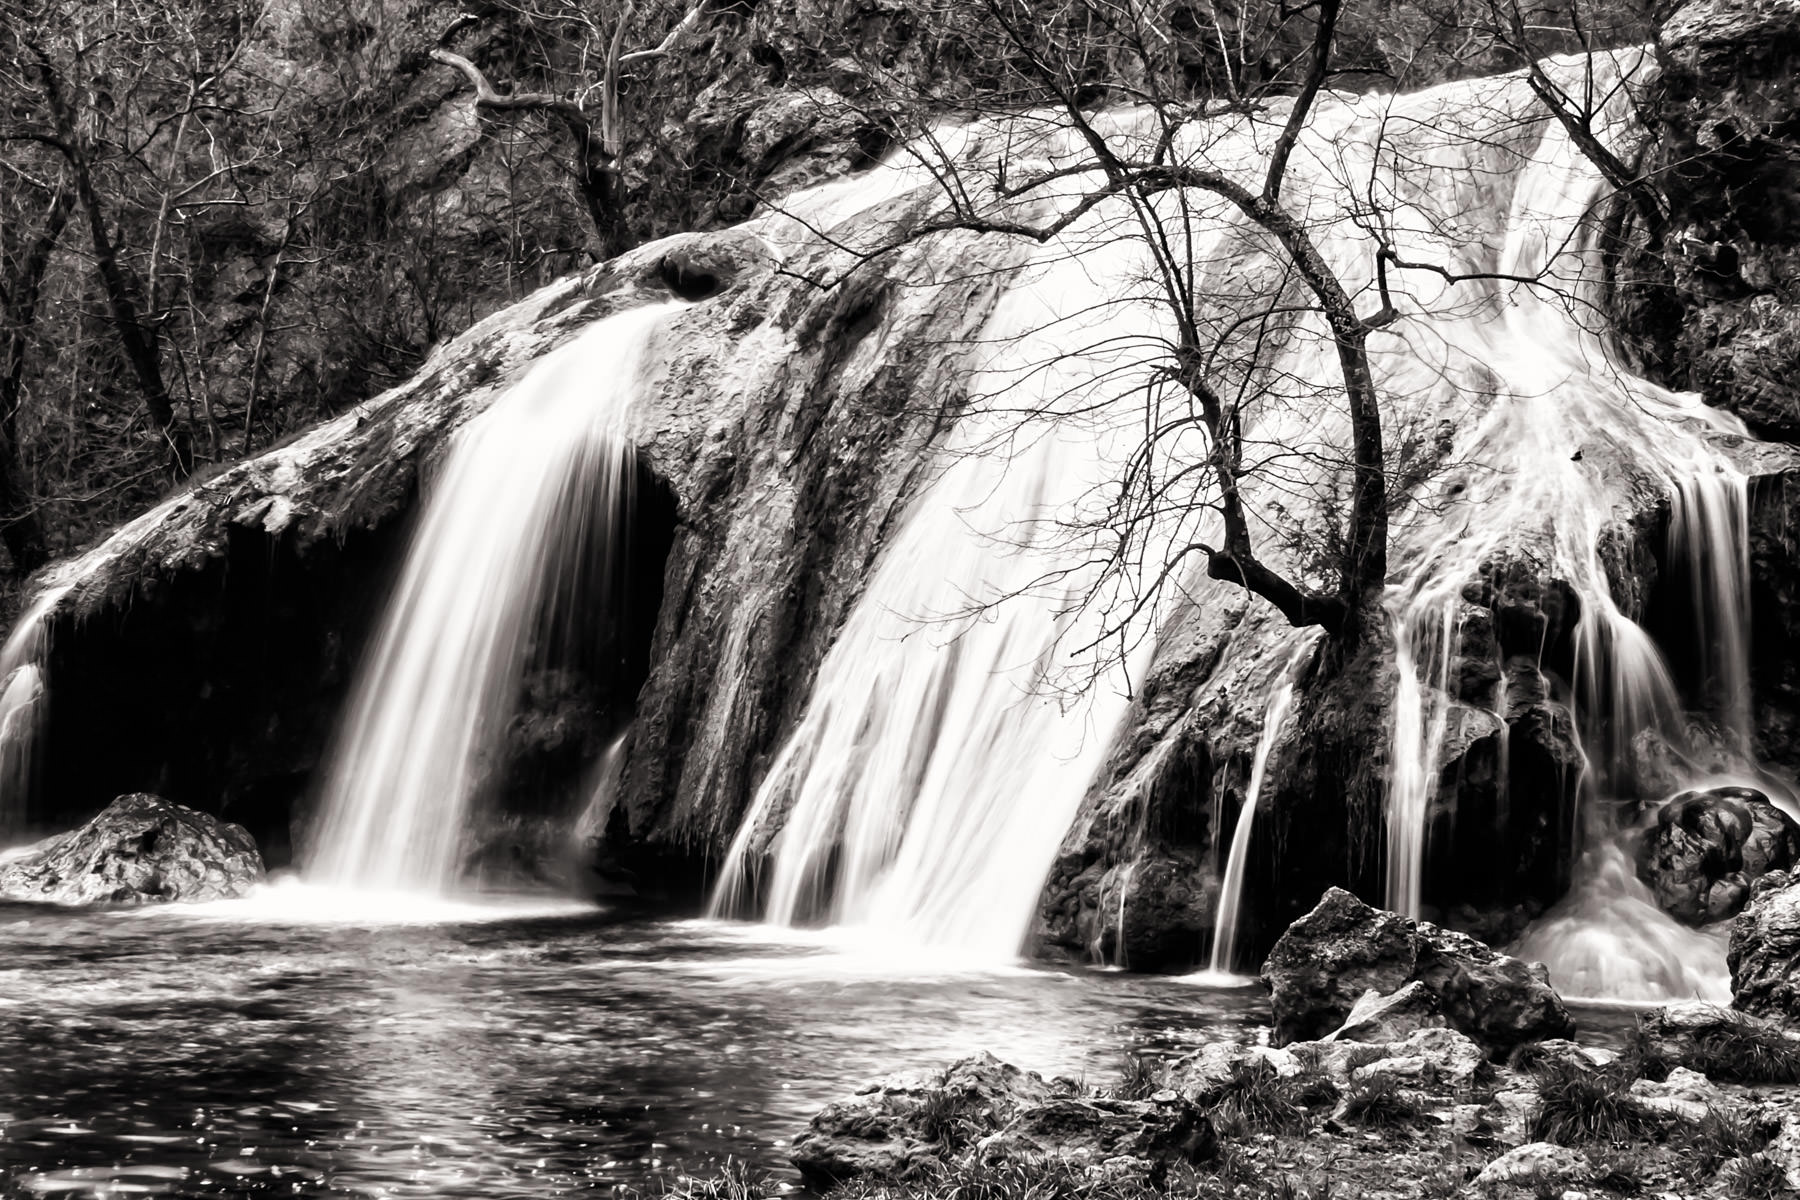 A long exposure shot of Turner Falls in the Arbuckle Mountains of Oklahoma.